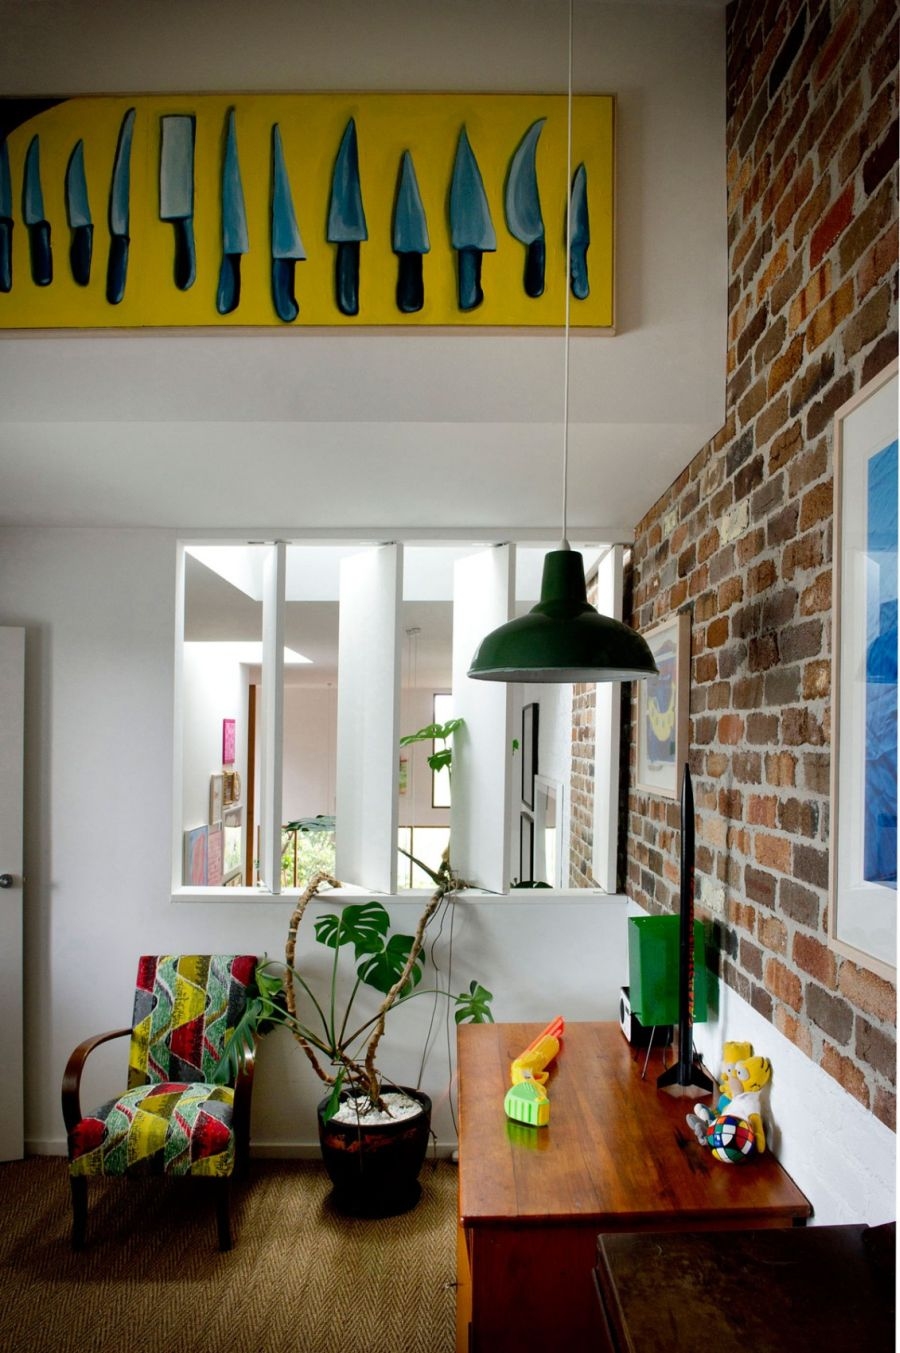 living room ideas for apartment interior design walls eclectic sydney house presents colorful and quirky interiors